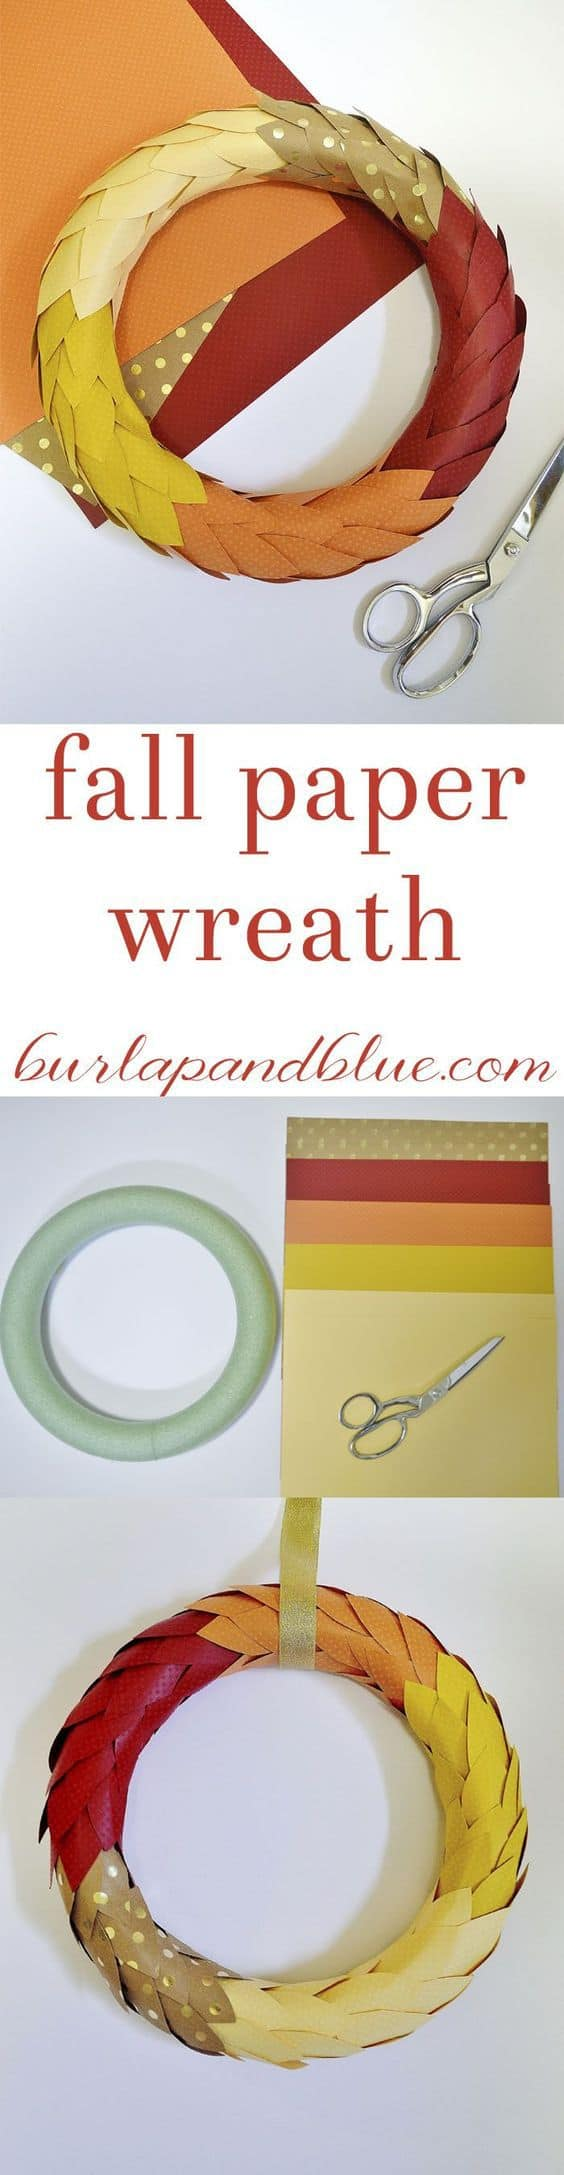 fall paper wreath